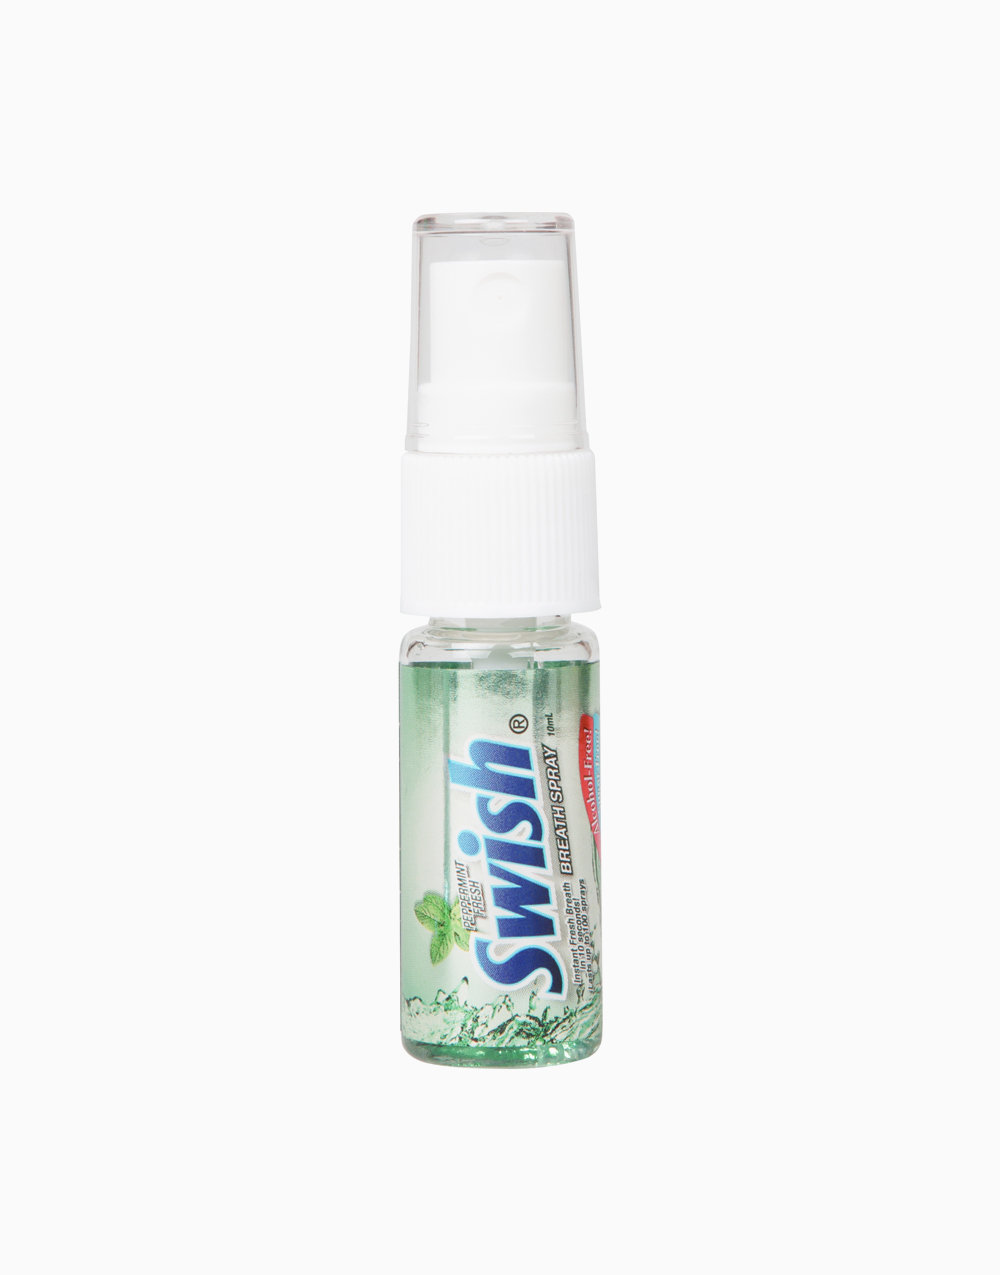 Swish Breathspray (10ml) by Swish | Peppermint Fresh